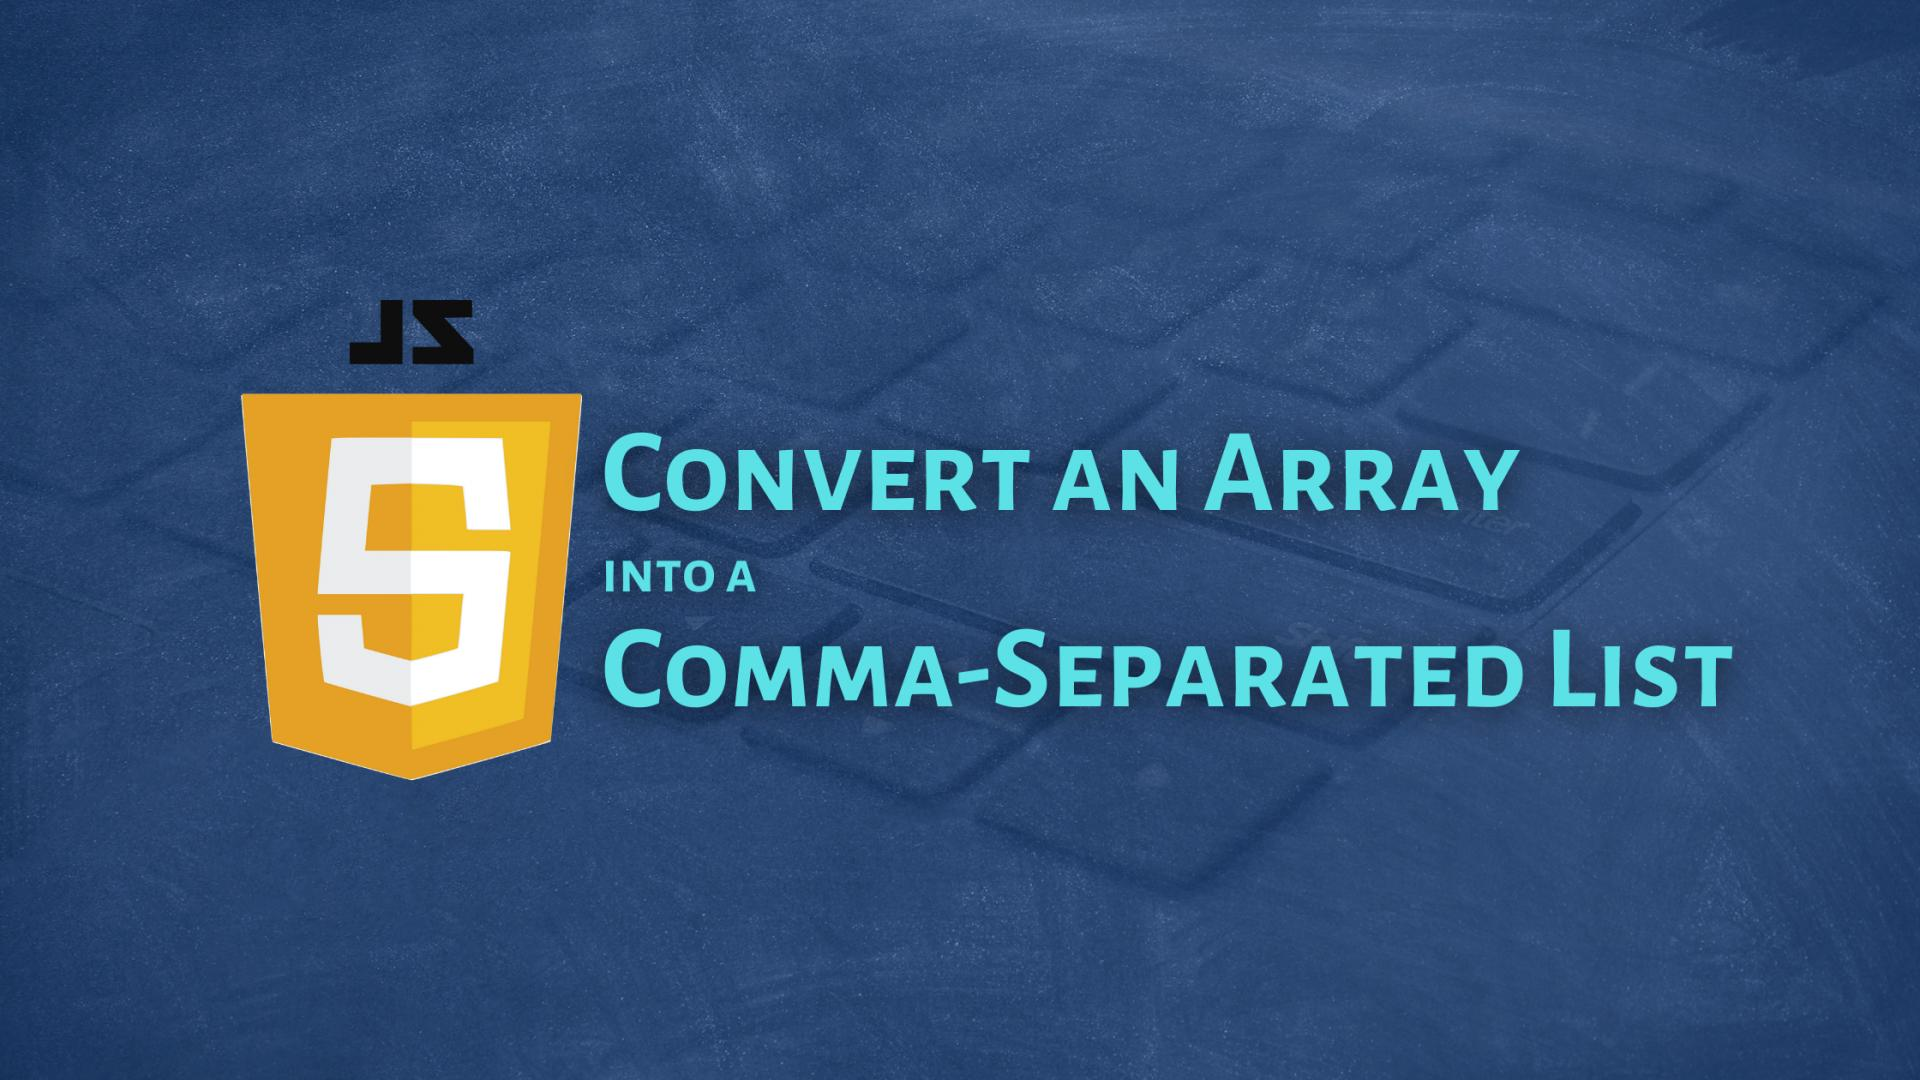 How to convert an Array into a Comma-Separated List in JavaScript